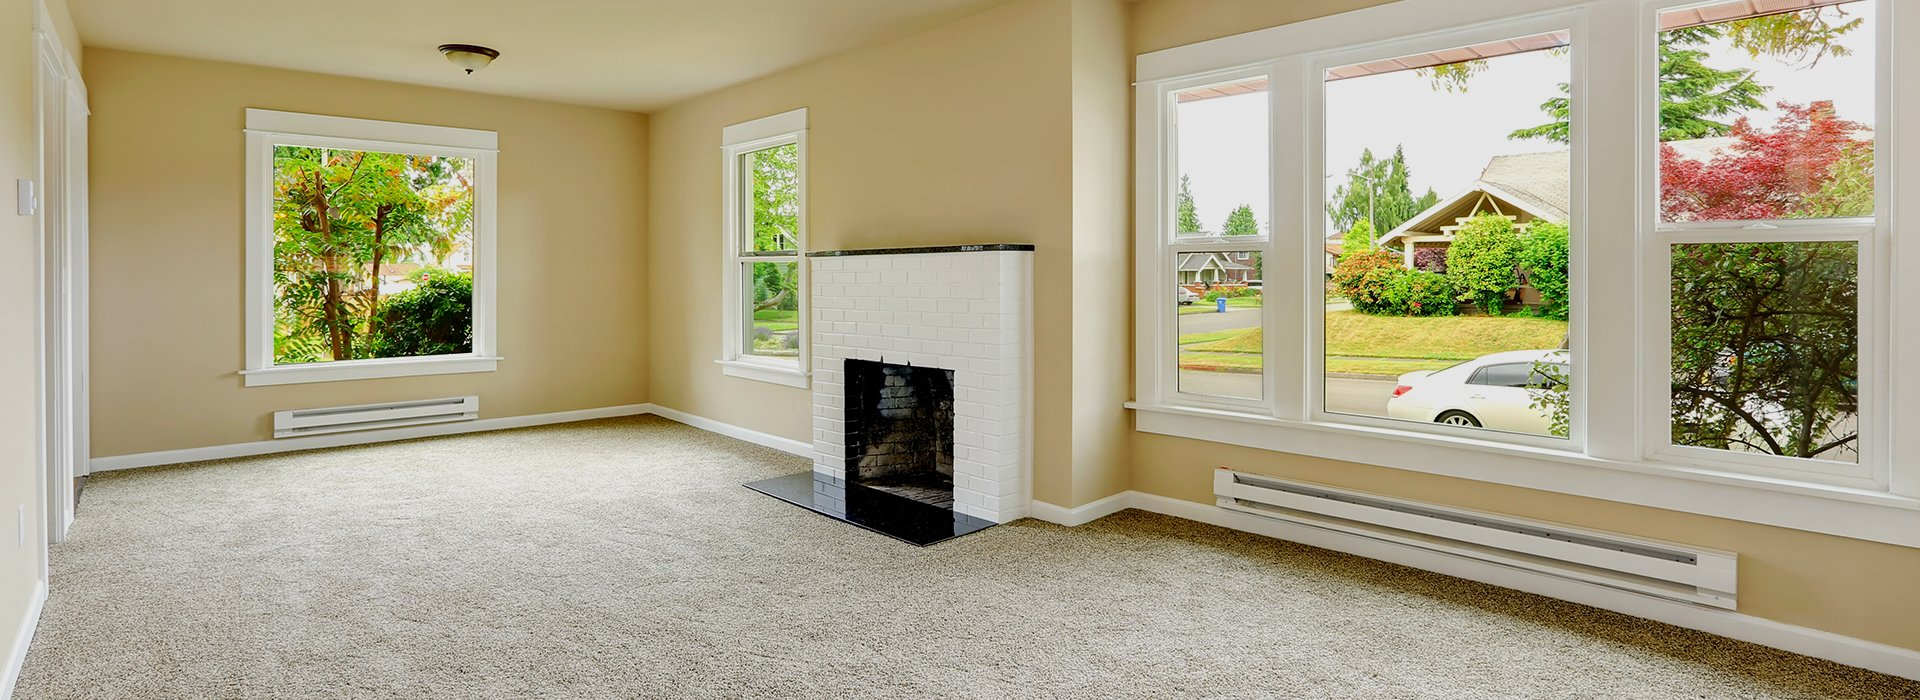 A large empty room with cream walls and white brick fireplace, and white windows overlooking a quiet tree-lined road